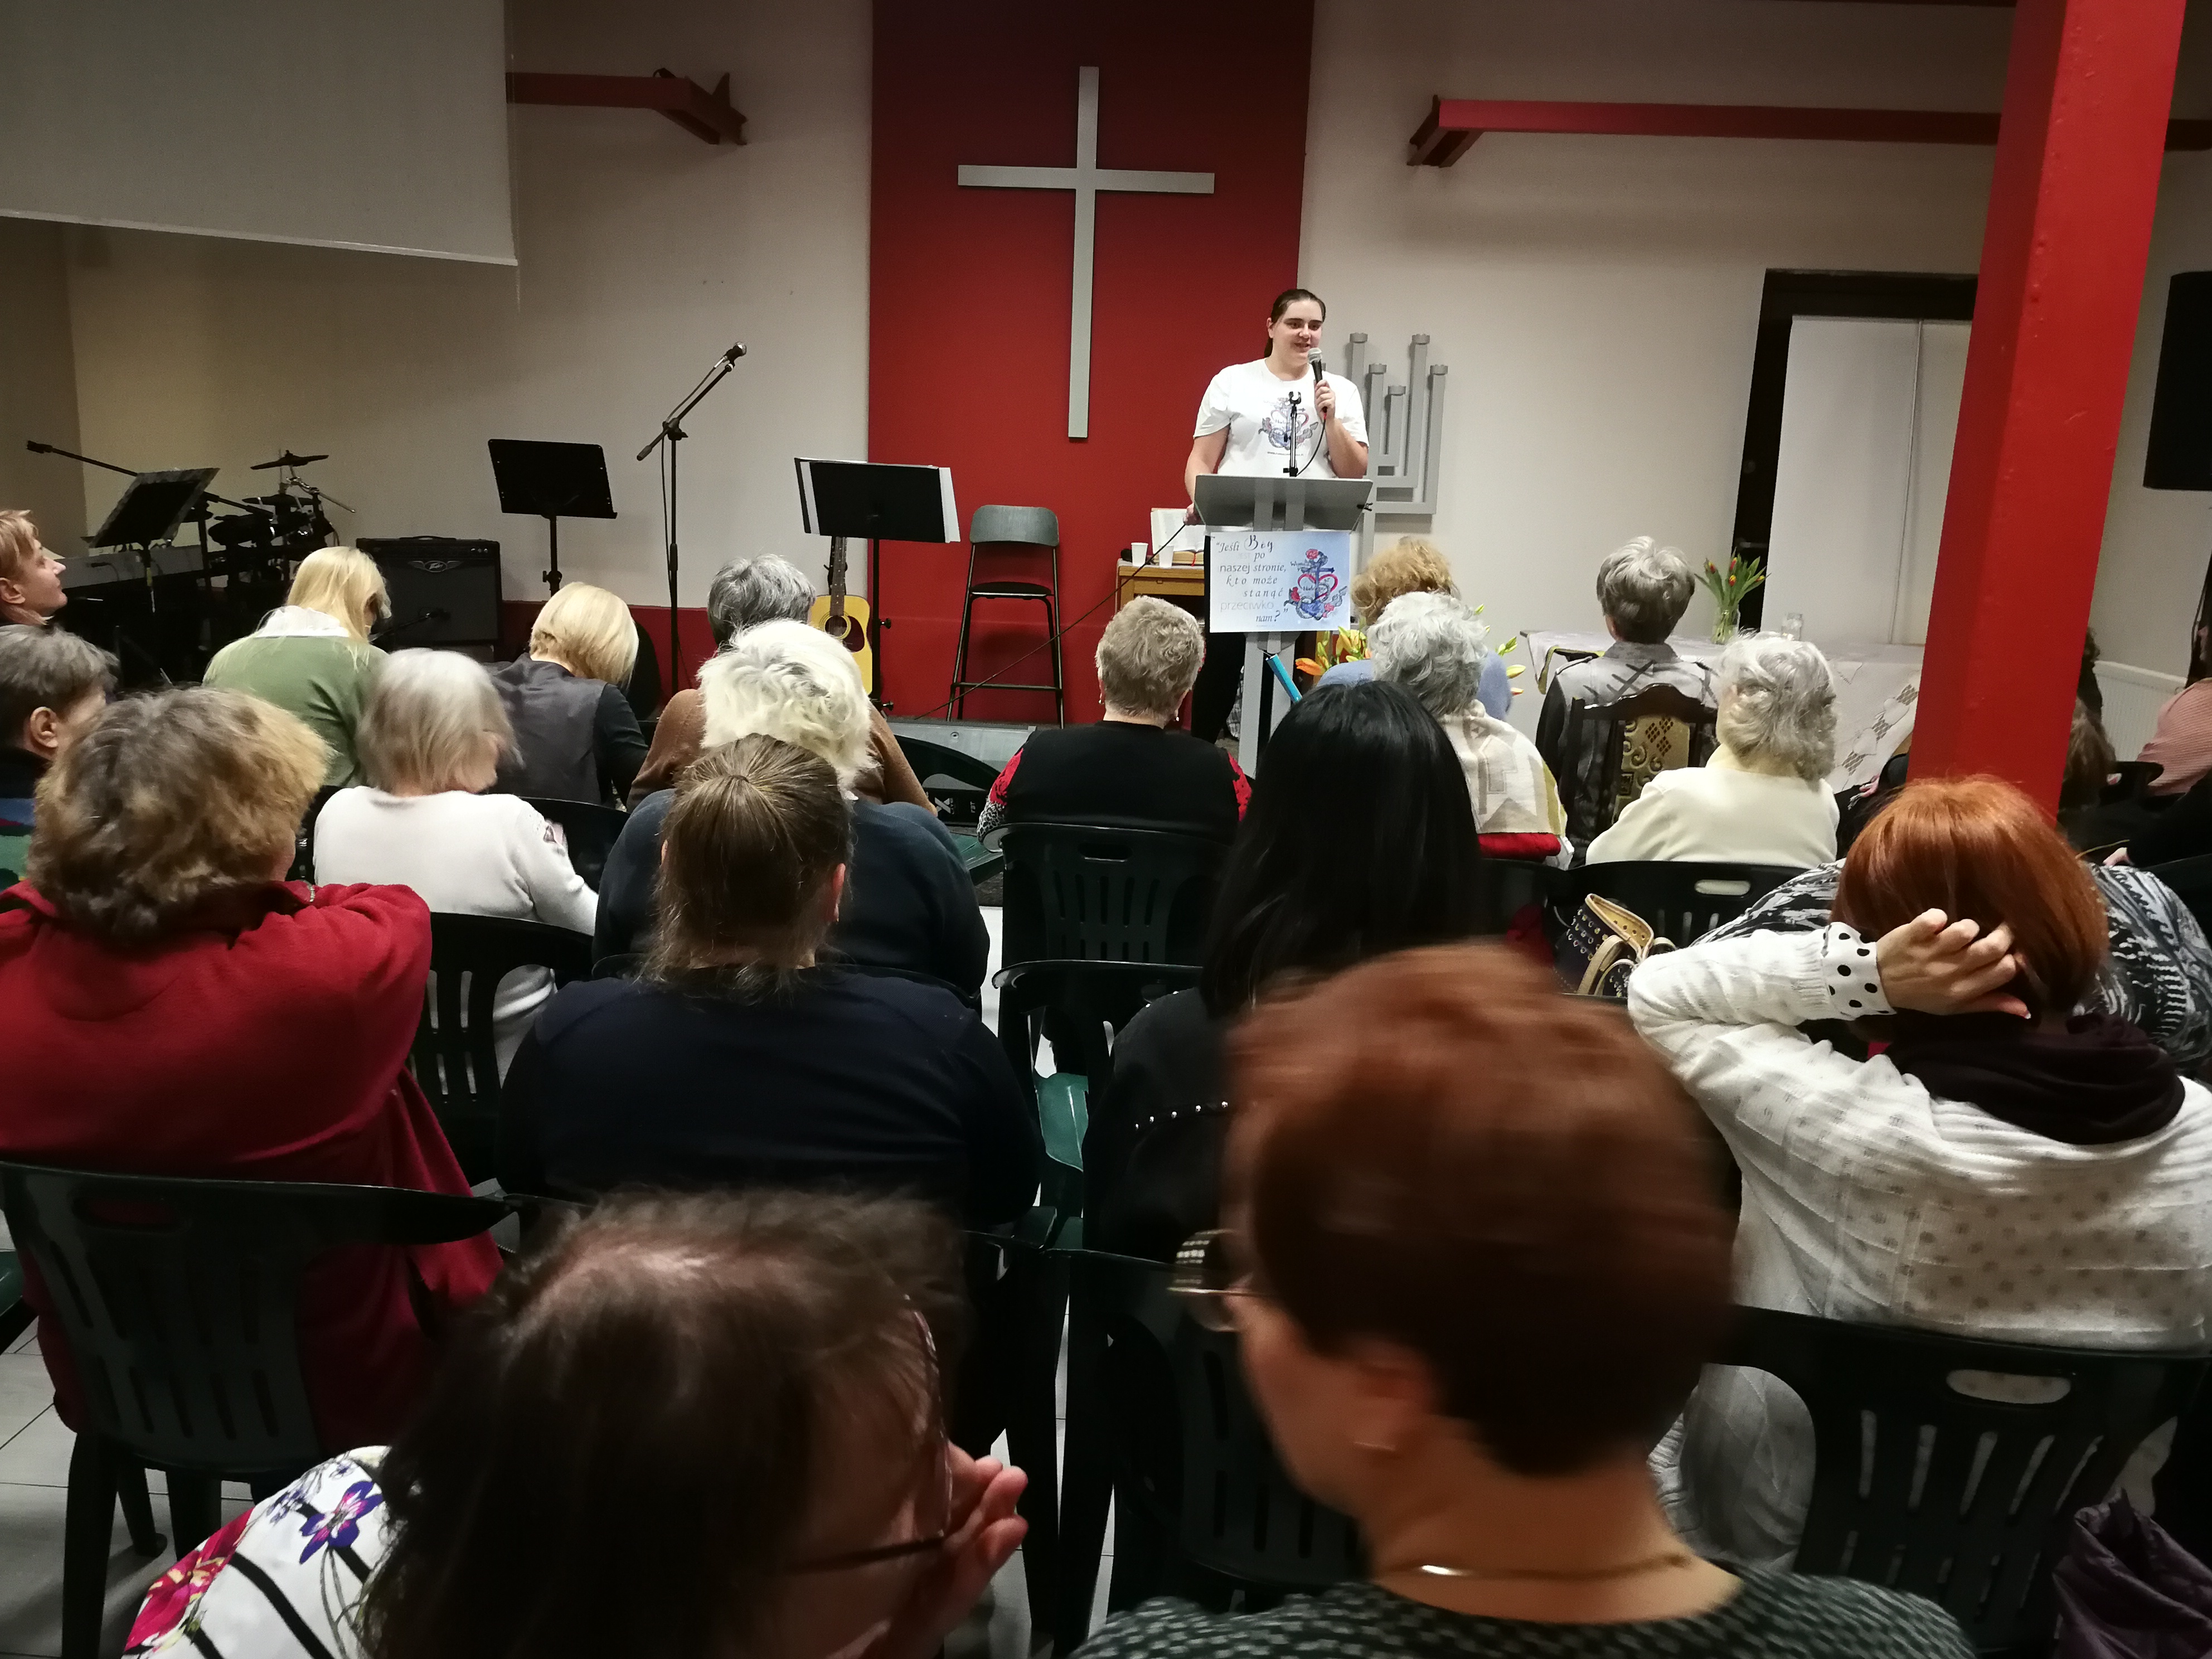 STEPS OF FAITH – REPORT FROM WOMEN'S CONFERENCE III